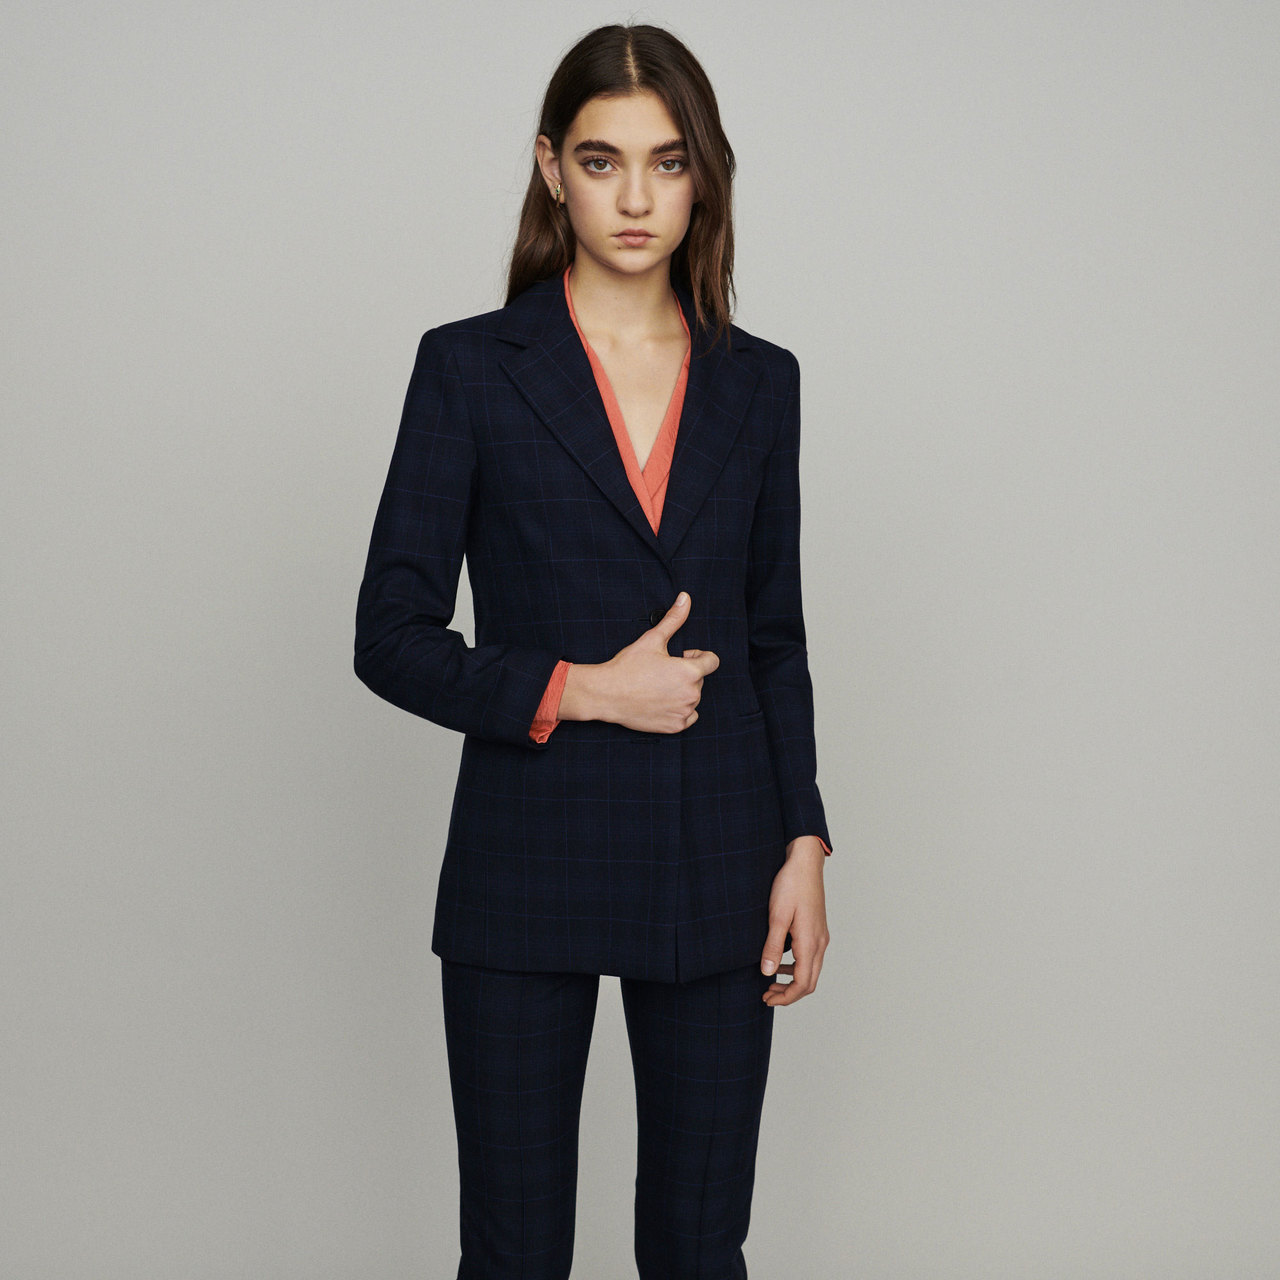 Jacket With Check Print - Navy